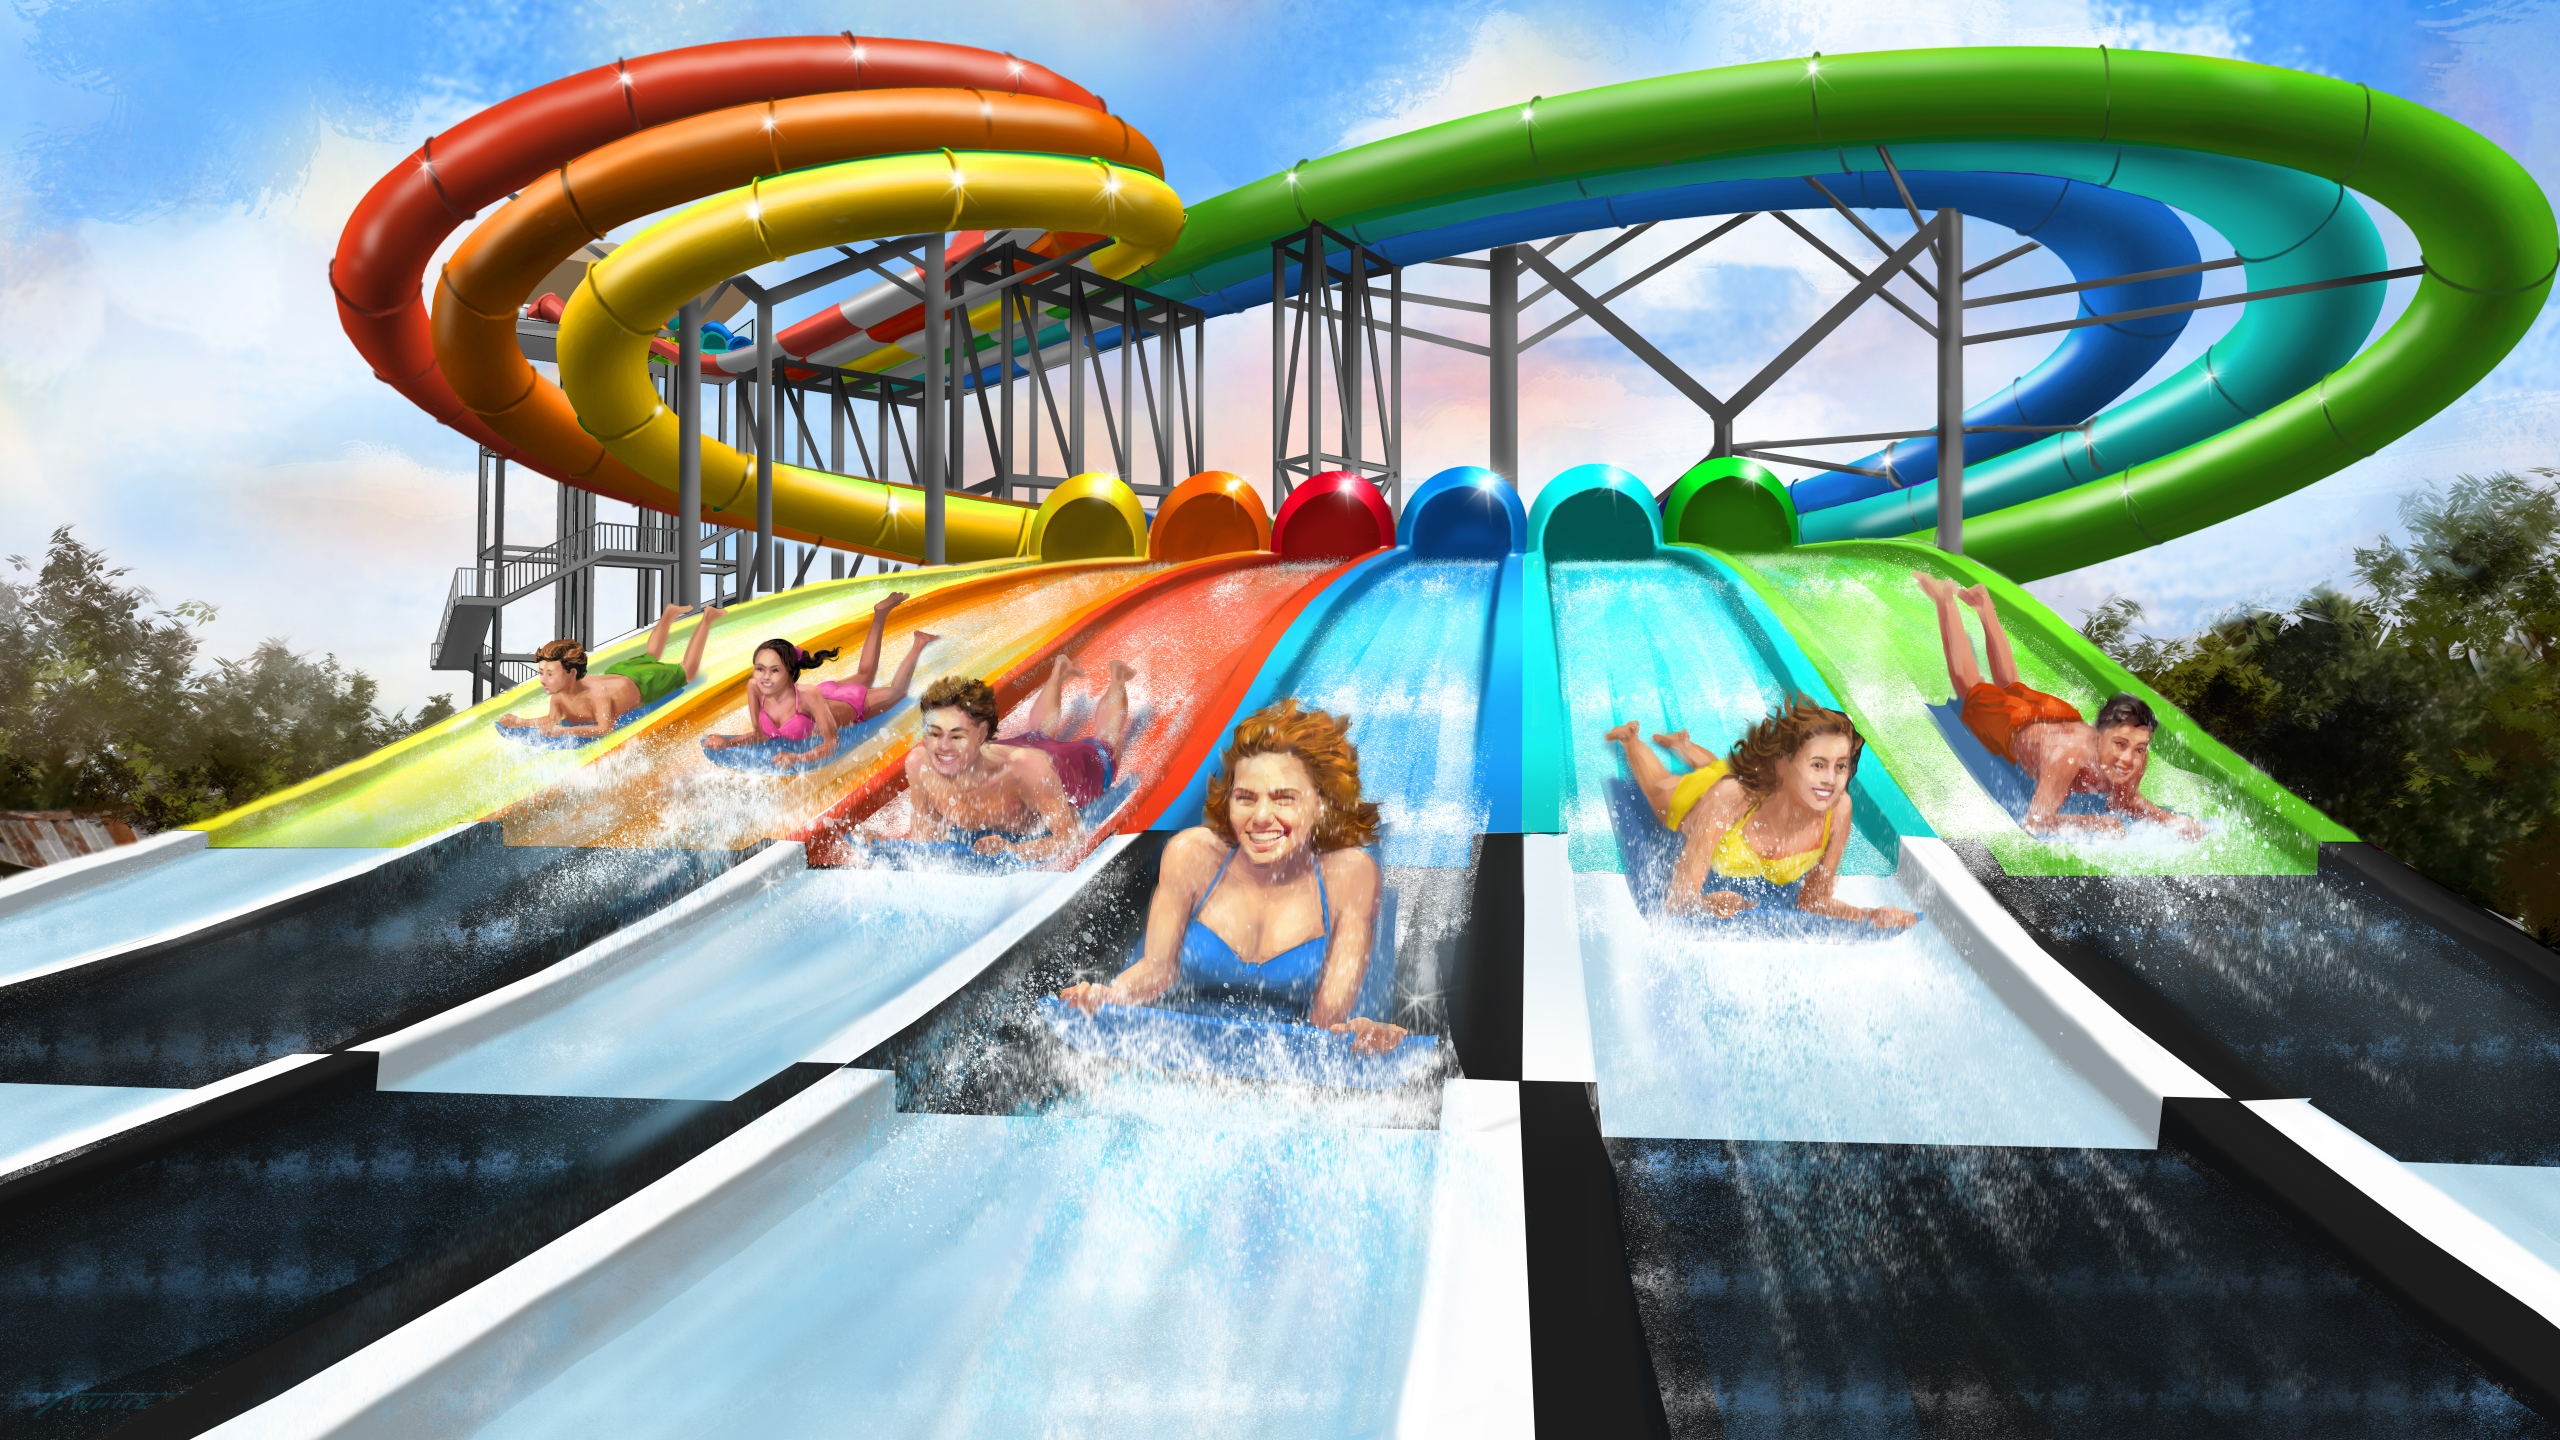 Carowinds announces new water slide and festival for 2020